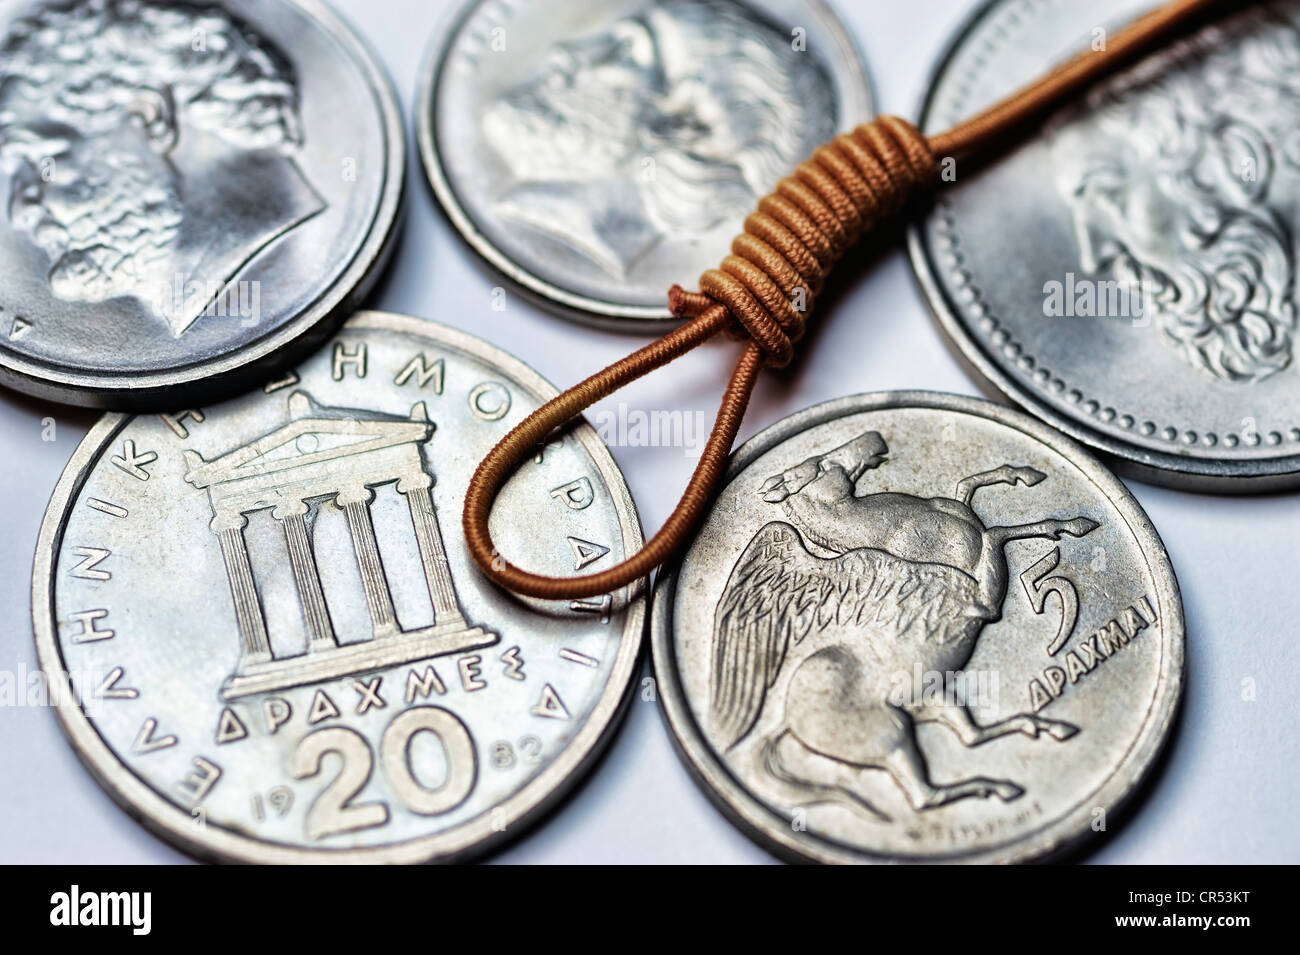 Greek drachmas with a hangman's noose, symbolic image of the possible discontinuation of the euro in Greece - Stock Image